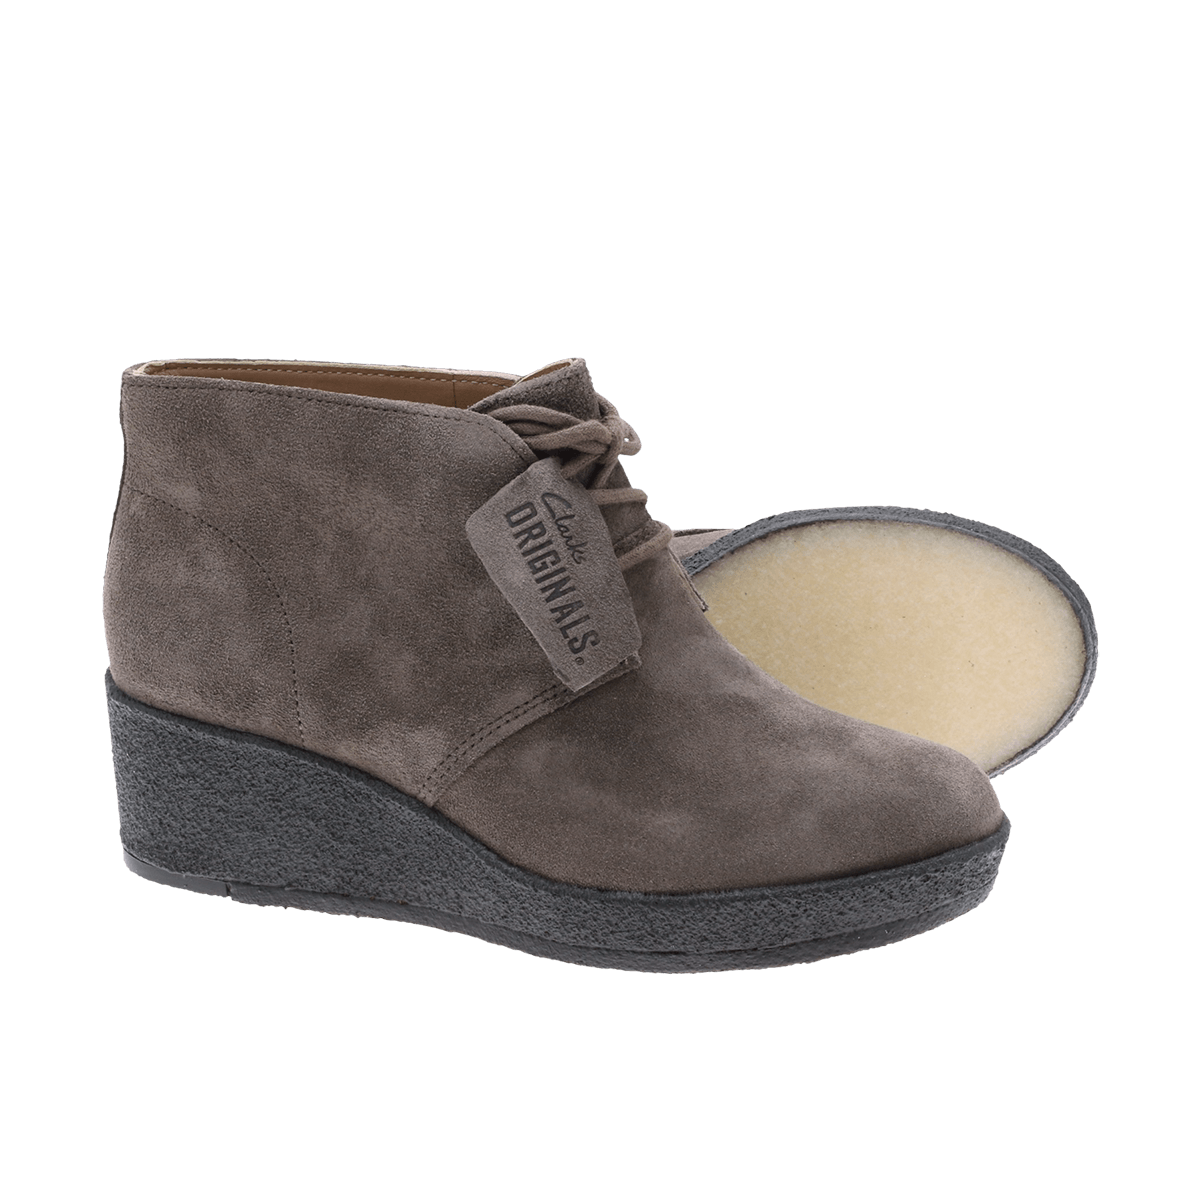 Clarks originals skoletter med wedge såle